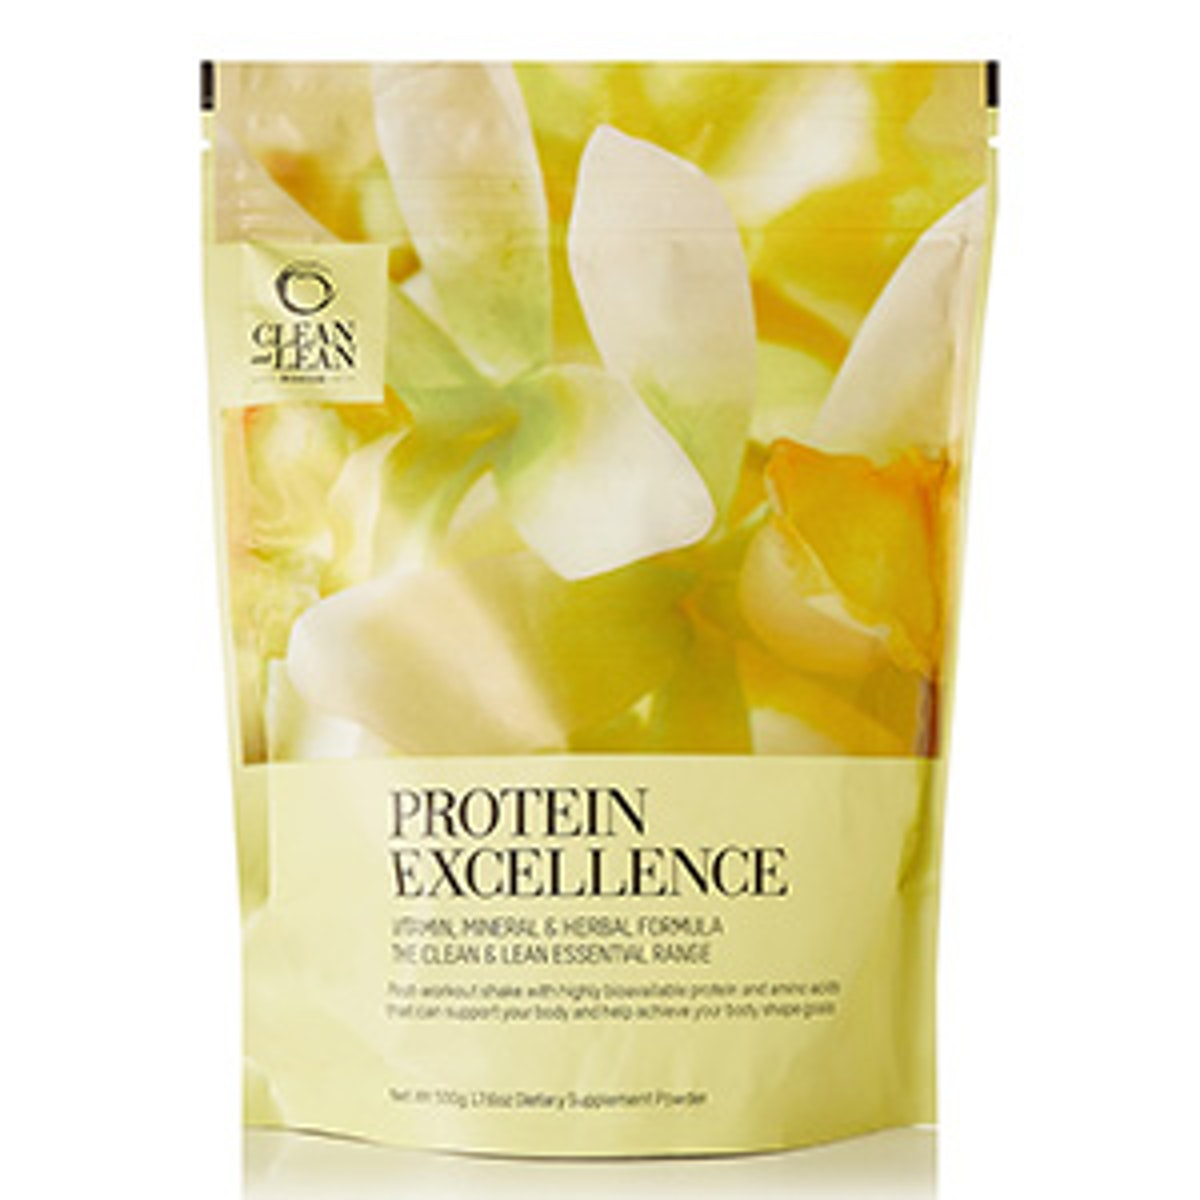 Clean and Lean Protein Excellence